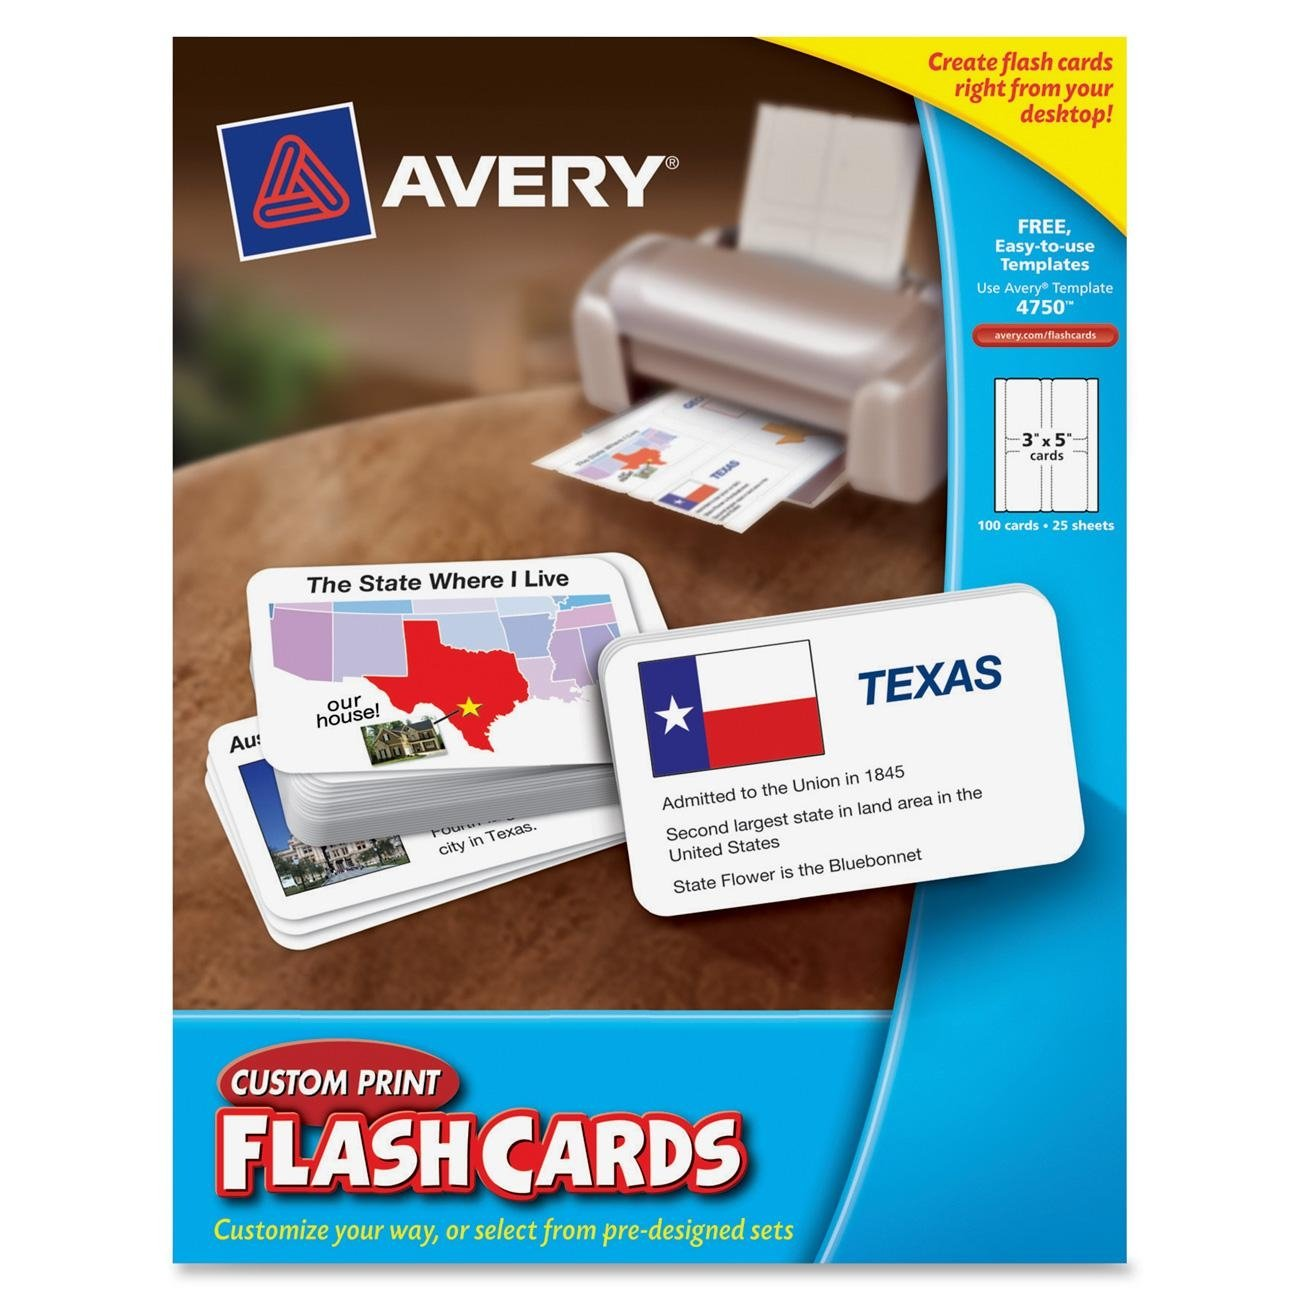 Avery Custom Print Flash Cards, 3 x 5 Inches, for Inkjet and Laser Printers, 100 Pack (04750) by Avery (Image #1)